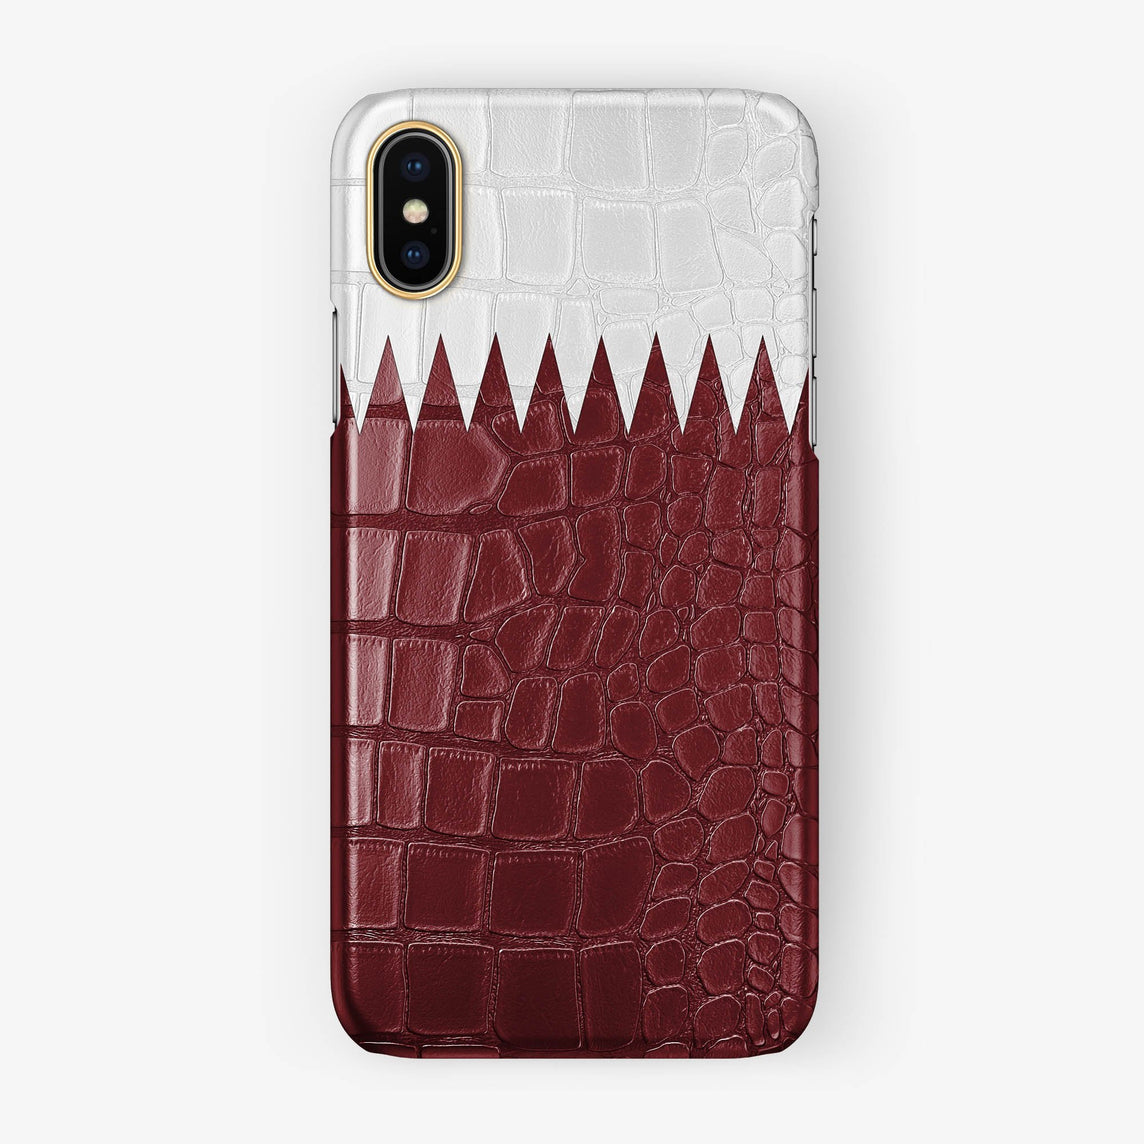 Alligator Case Flag of Qatar iPhone X/Xs | Yellow Gold - Hadoro